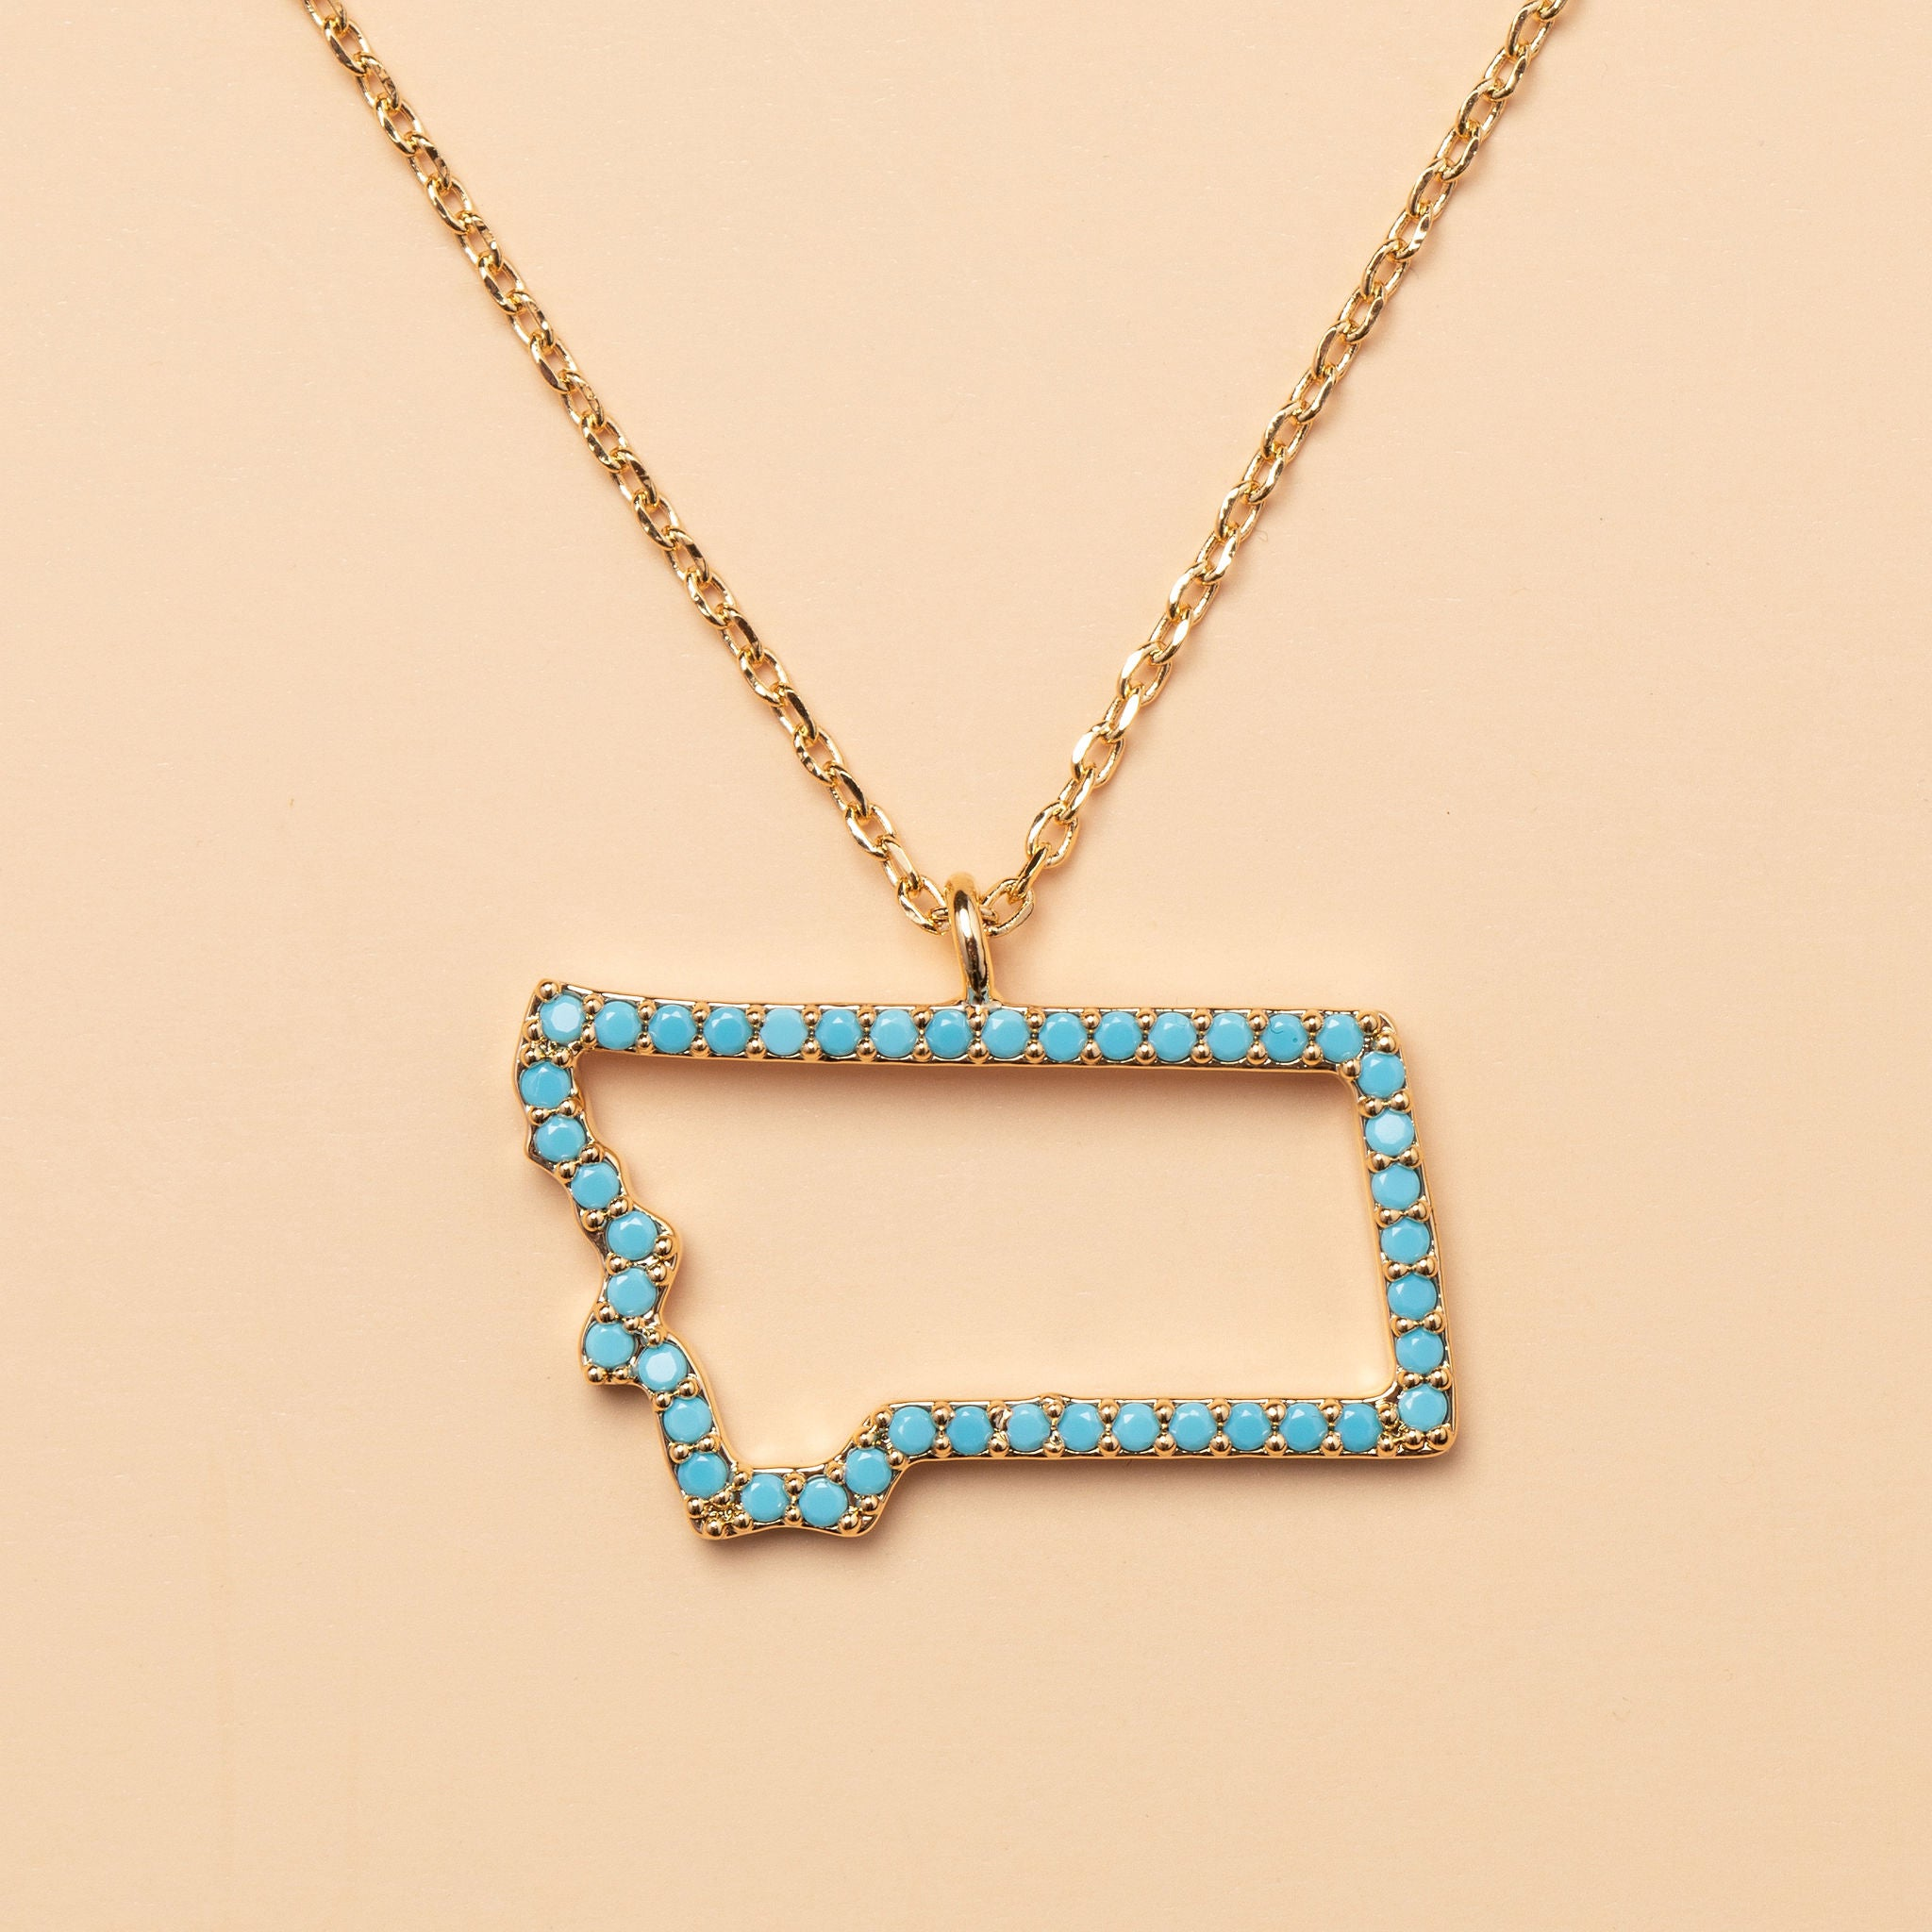 Montana On My Mind Necklace in Gold